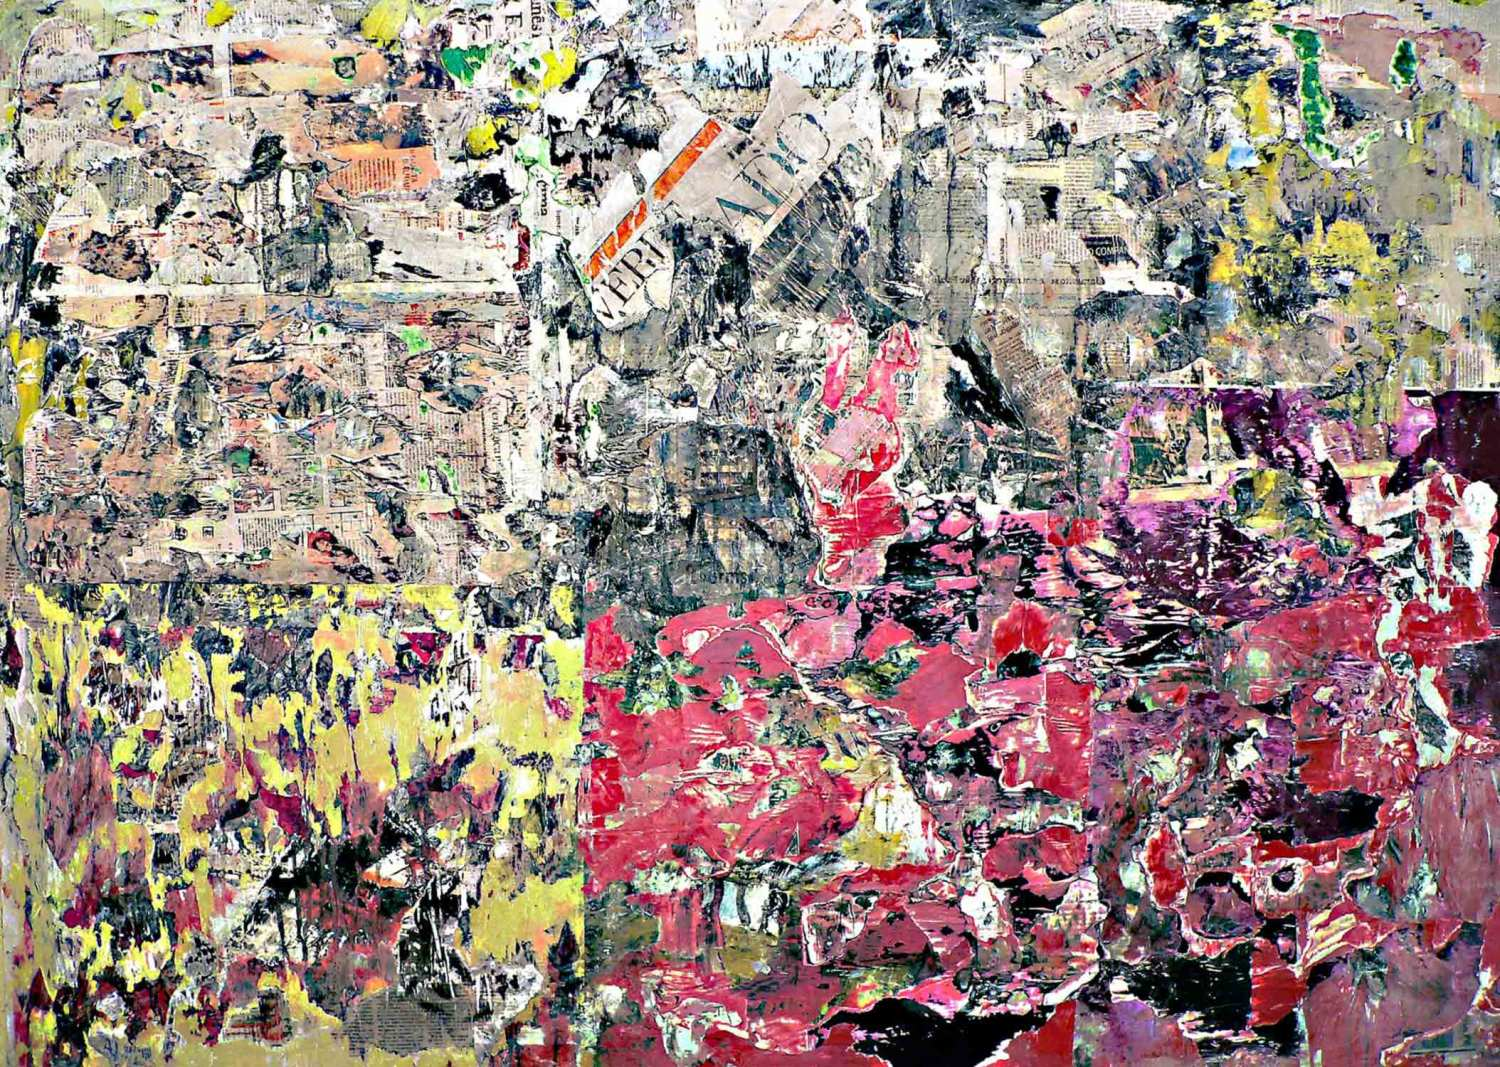 time and again - 125 x 175 cm - acrylic, spray paint and collage on canvas - 2009